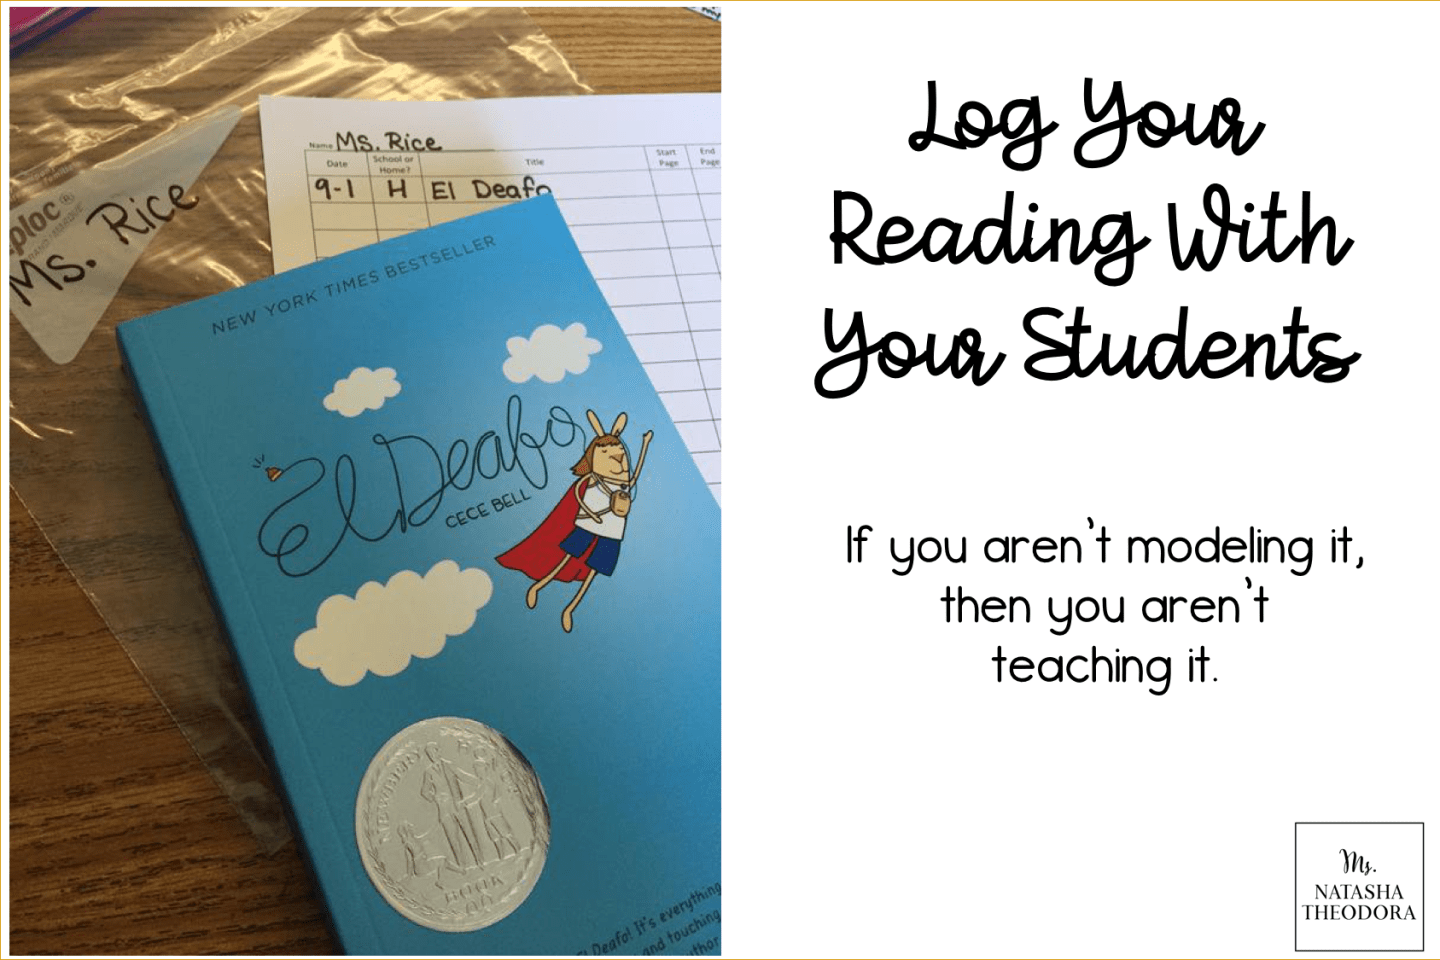 Log Your Reading With Your Students